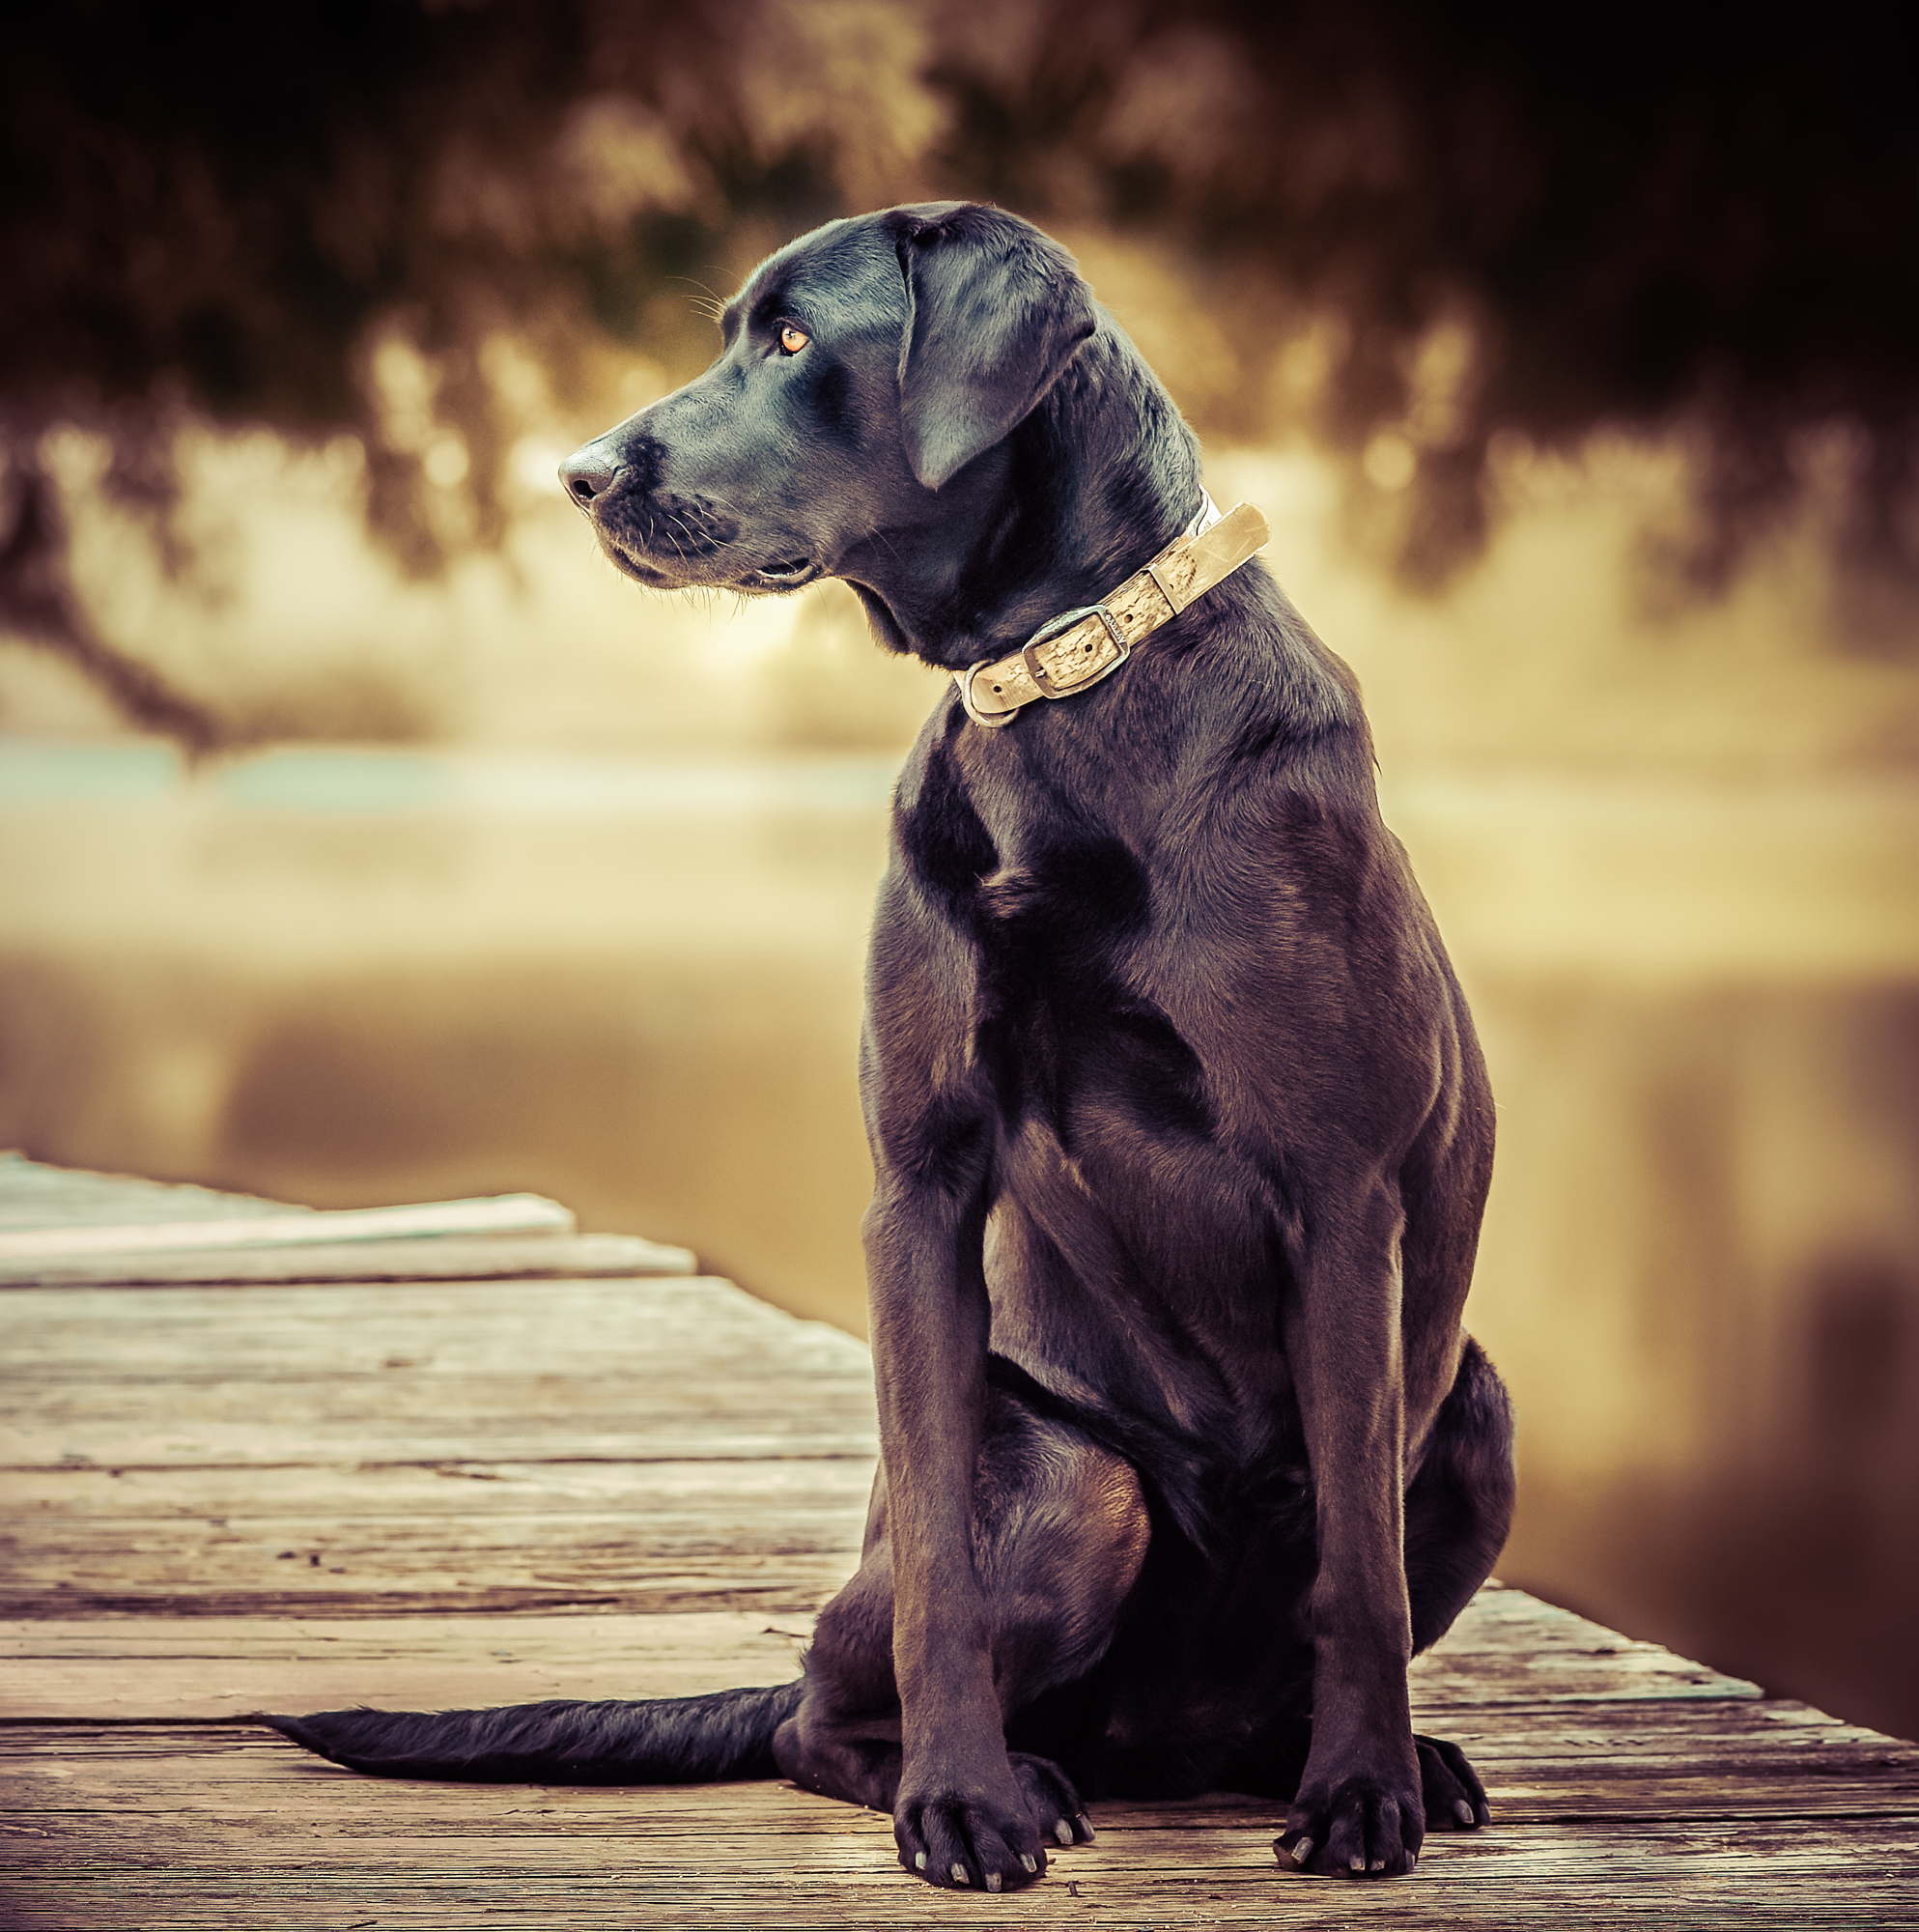 rick-meoli-commercial-photographer-outdoor-animal-lifestyle-repheads-43